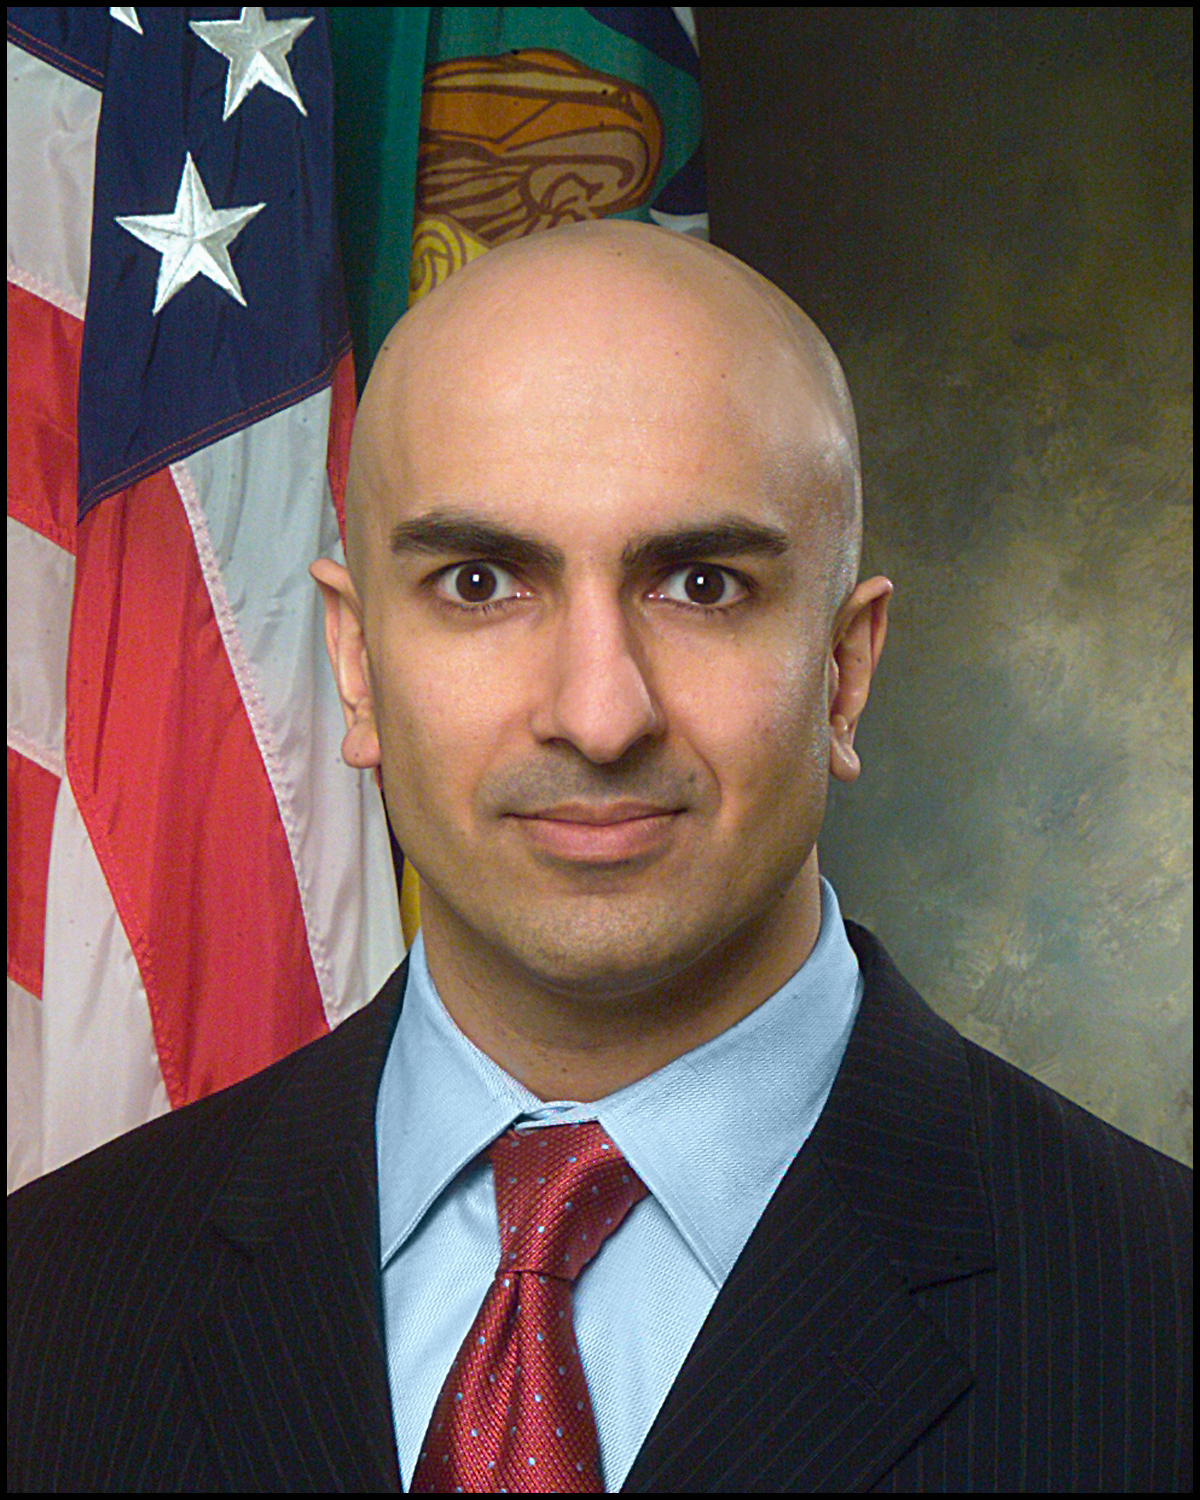 Federal Reserve Bank of Minneapolis President and CEO Neel Kashkari defended his status as the lone member of the central bank's Federal Open Market Committee (FOMC) to vote against an interest rate hike in a 13-page essay